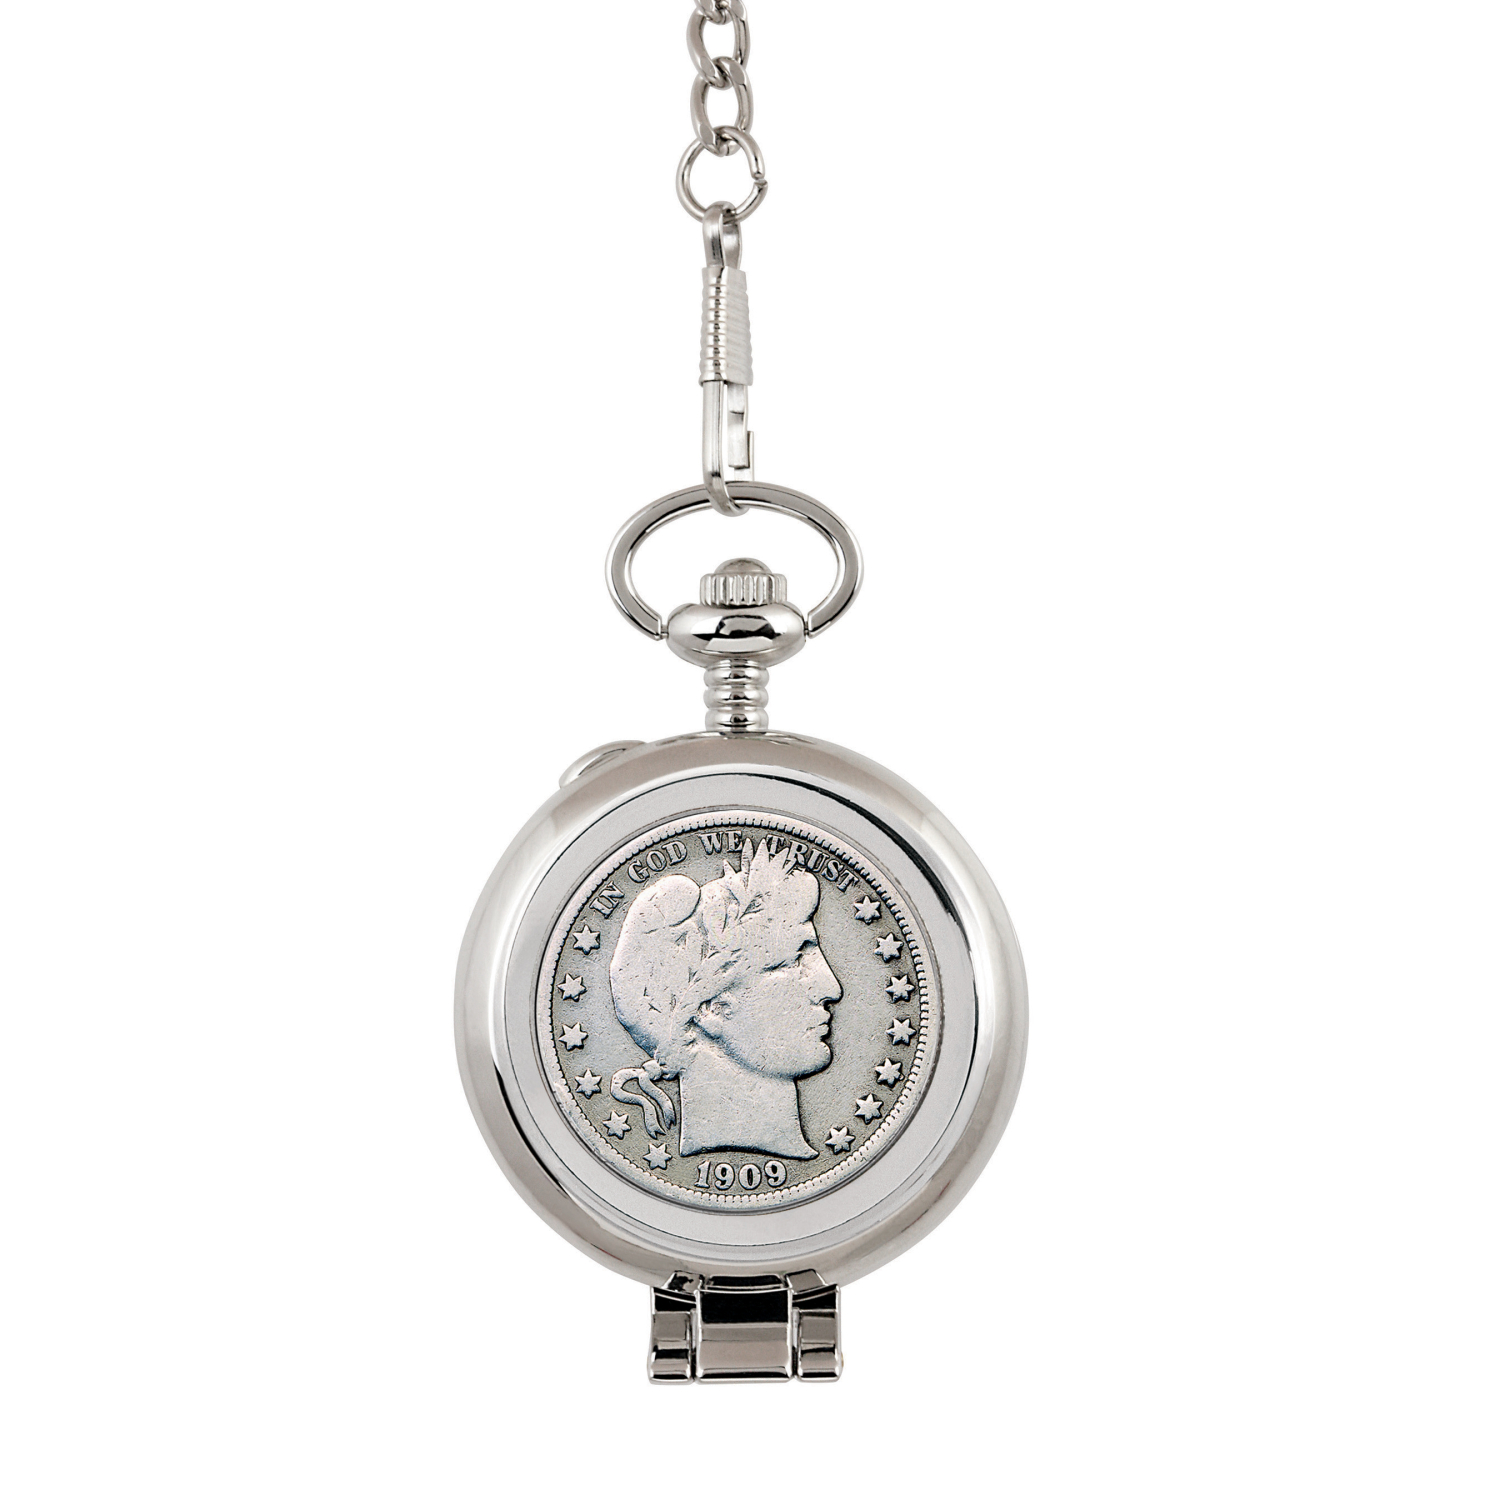 Silver Barber Half Dollar Coin Pocket Watch With Skeleton Movement - Black Dial With Gold Roman Numerals